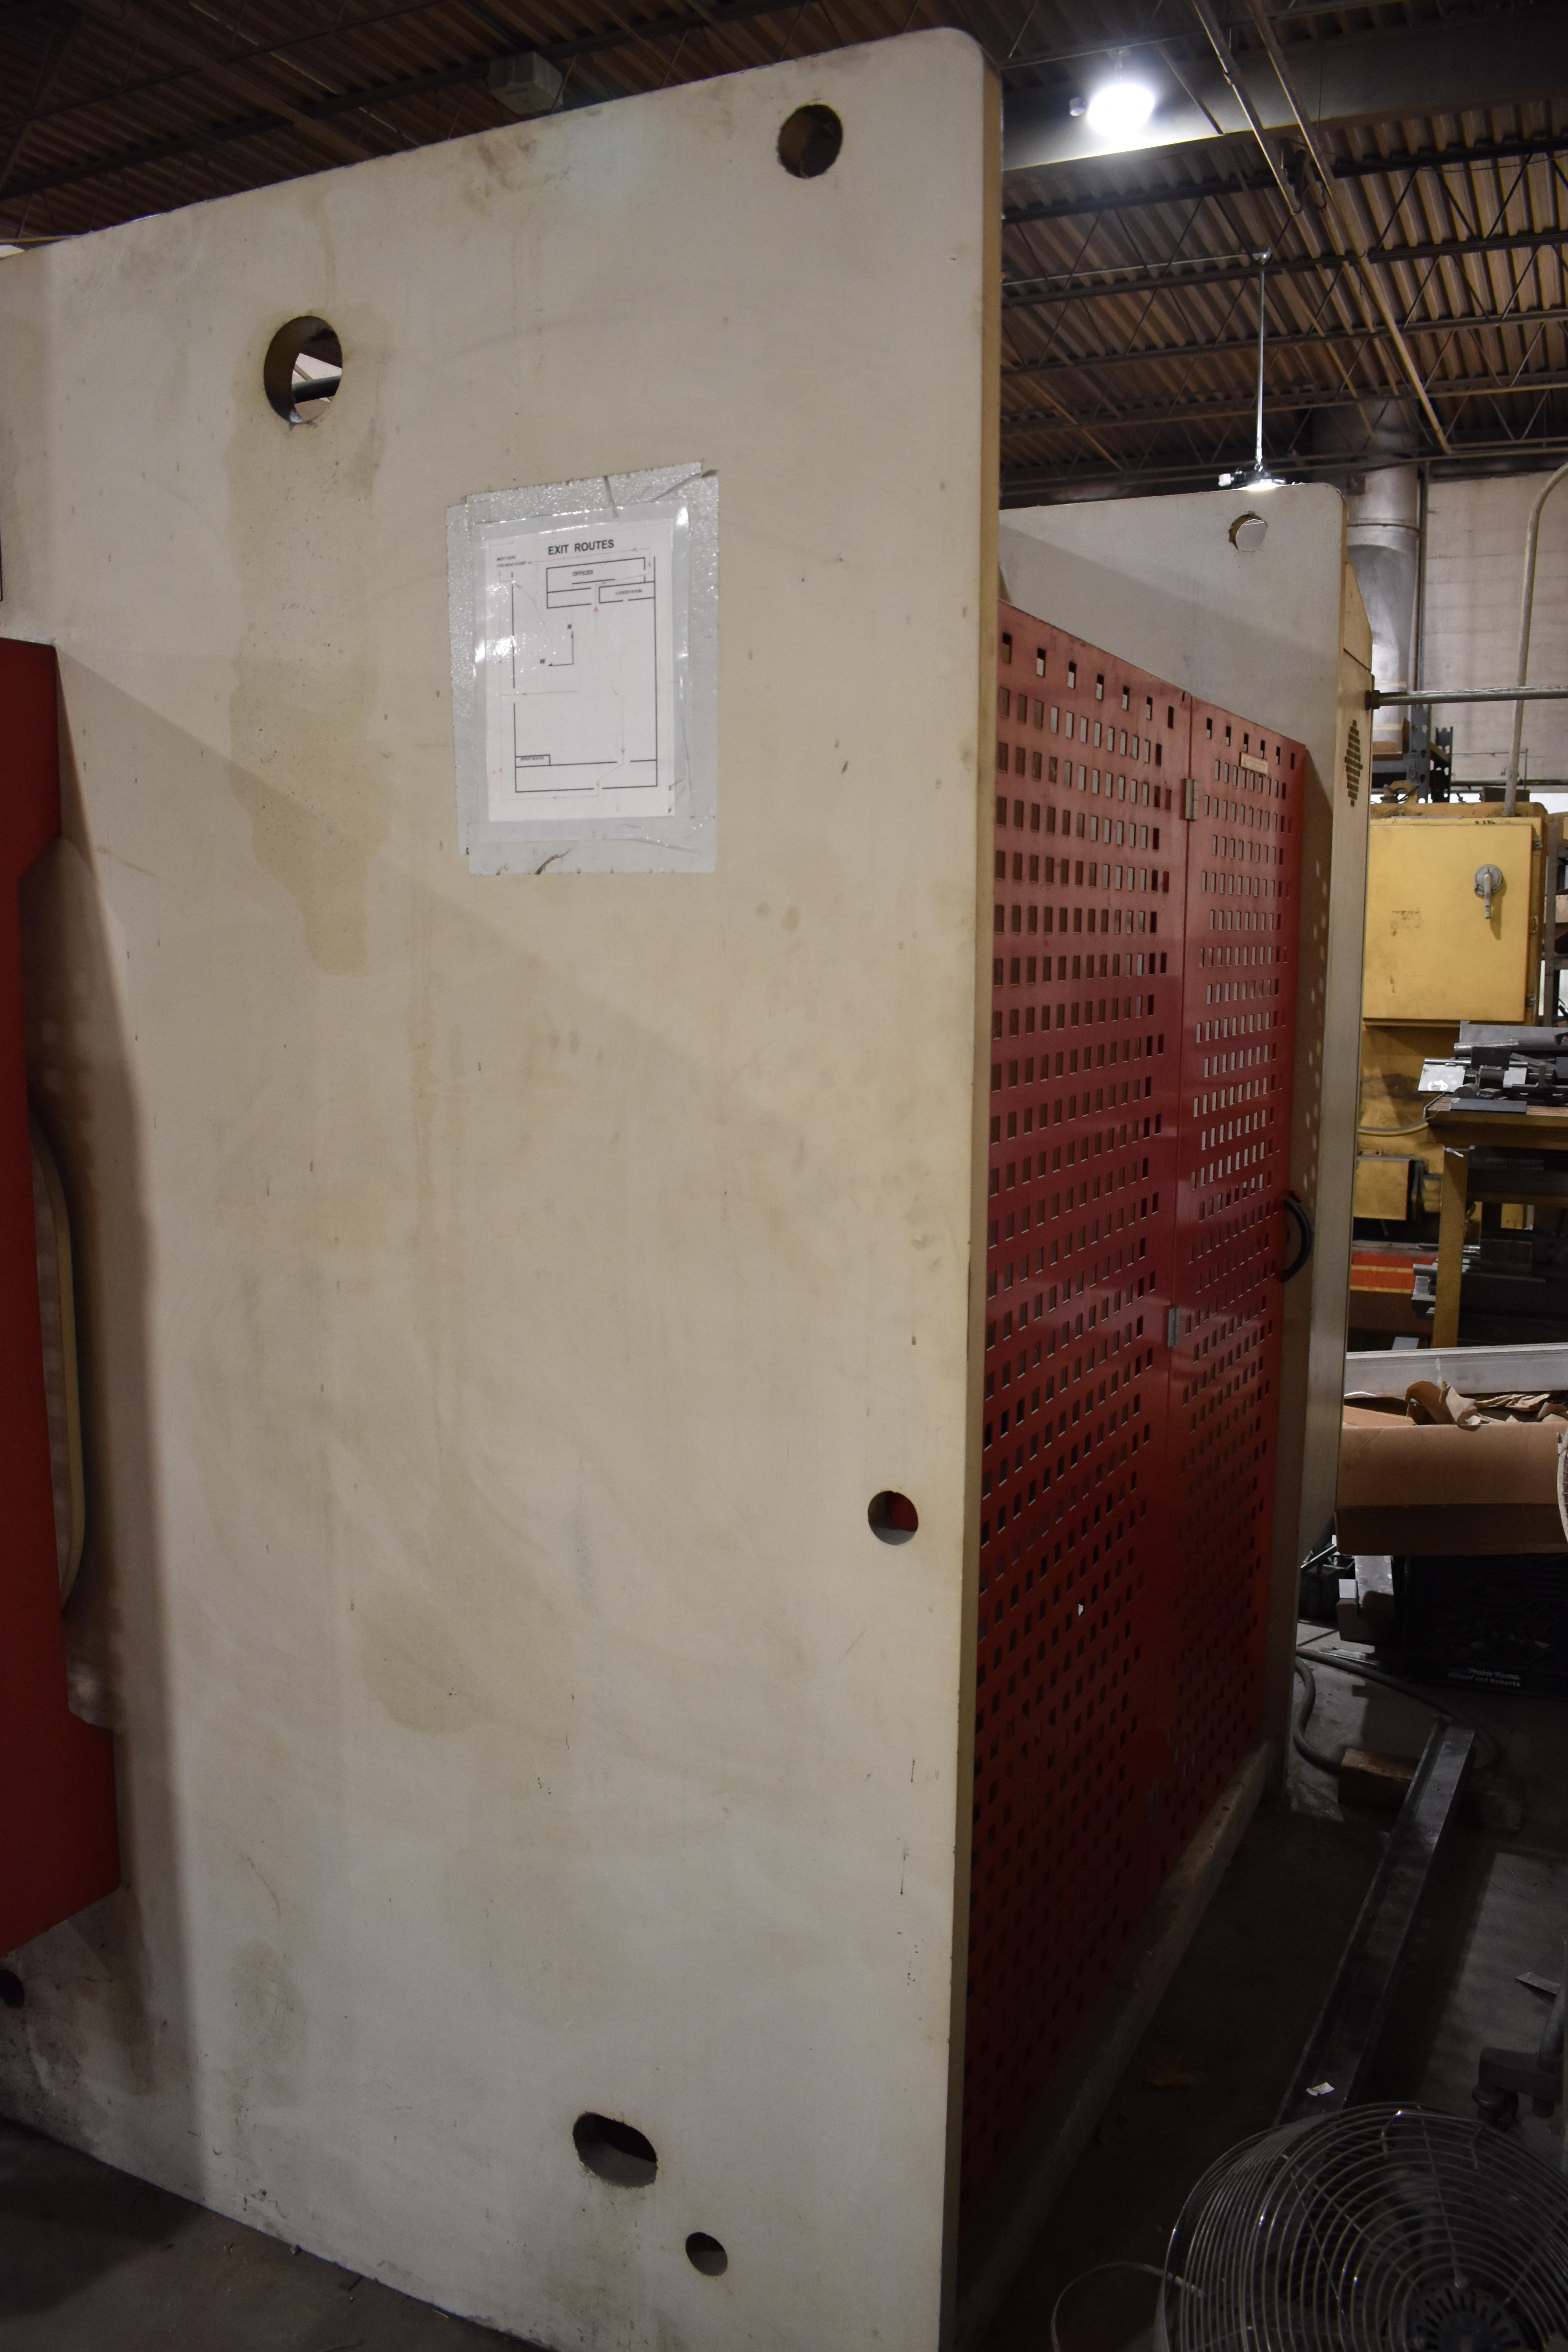 Lot 38 - Baykal Fab-Line 82 in. x 60 Ton Type APHS2104X60 Compact CNC Hydraulic Press Brake, S/N 11513 (